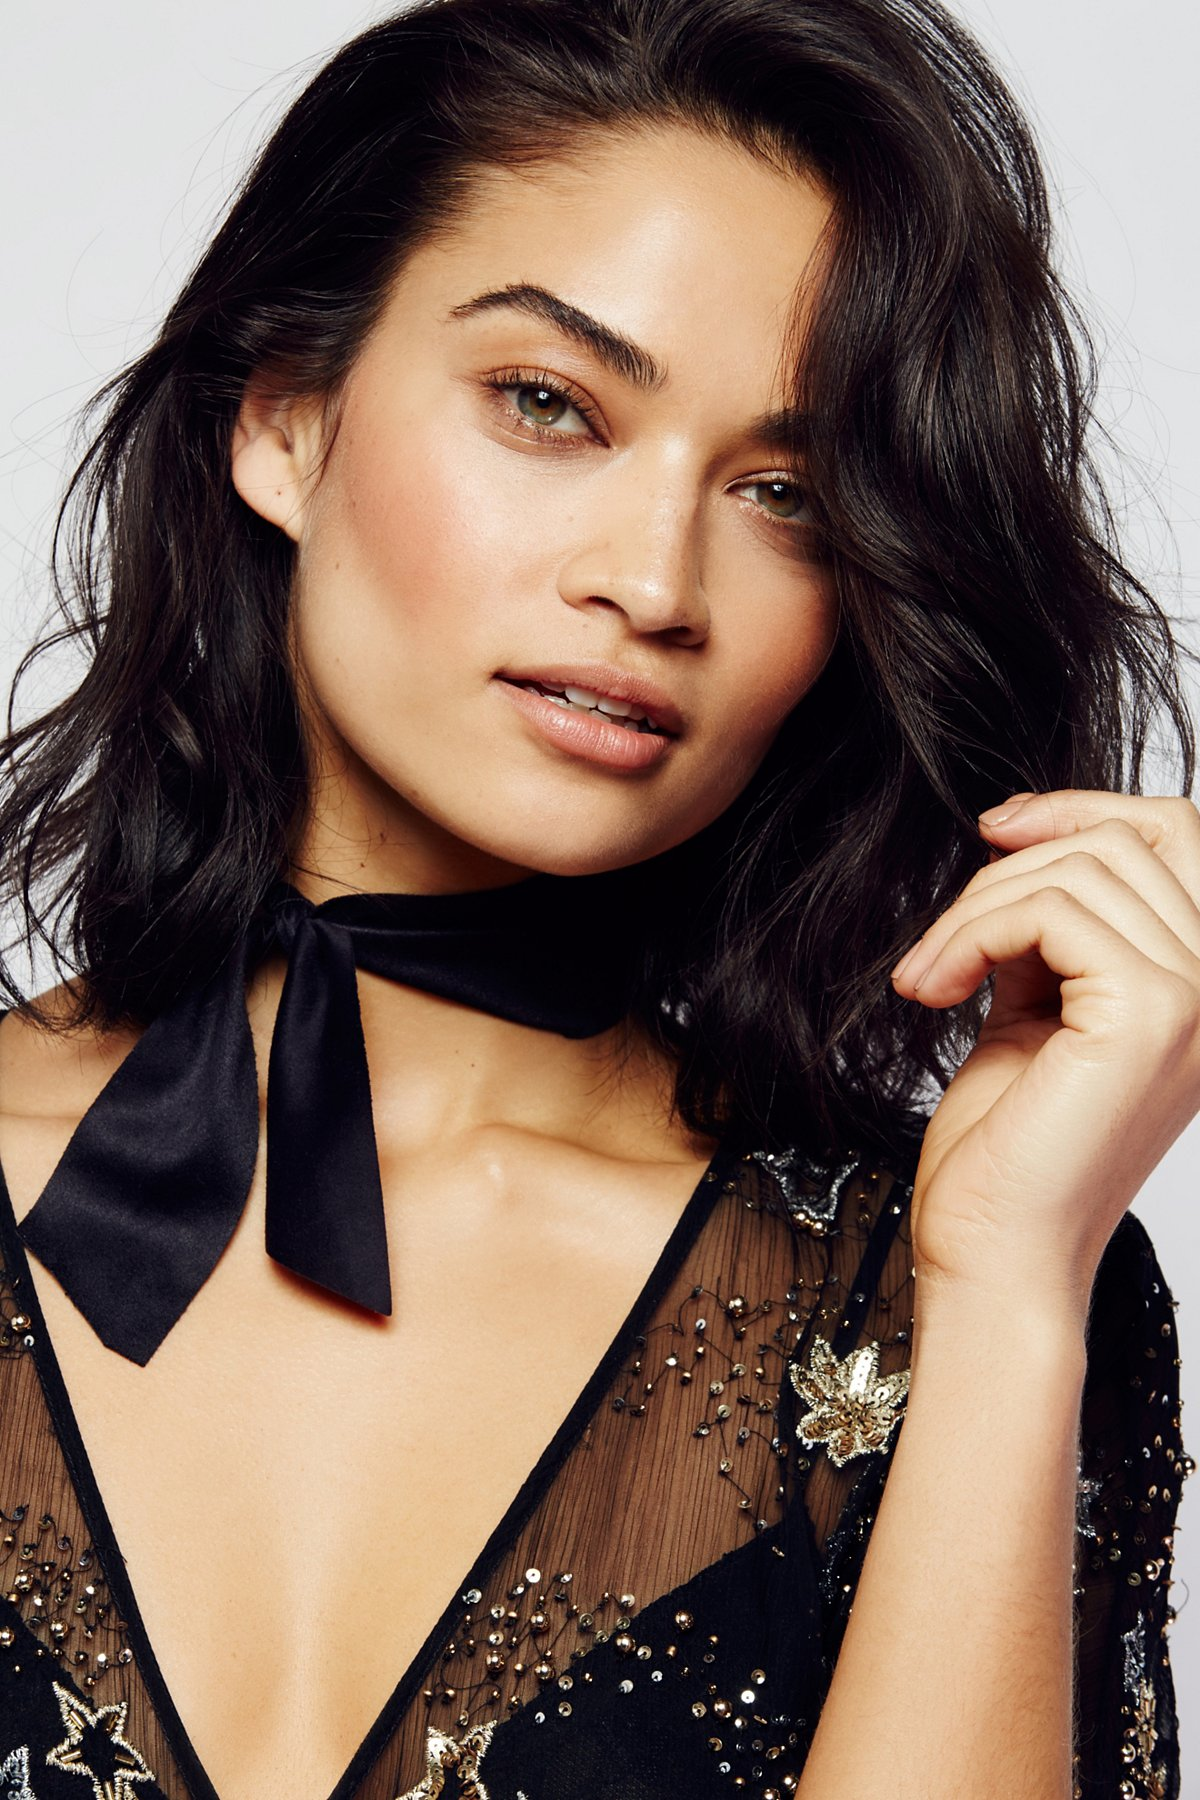 Evelyn Suede Bow Choker